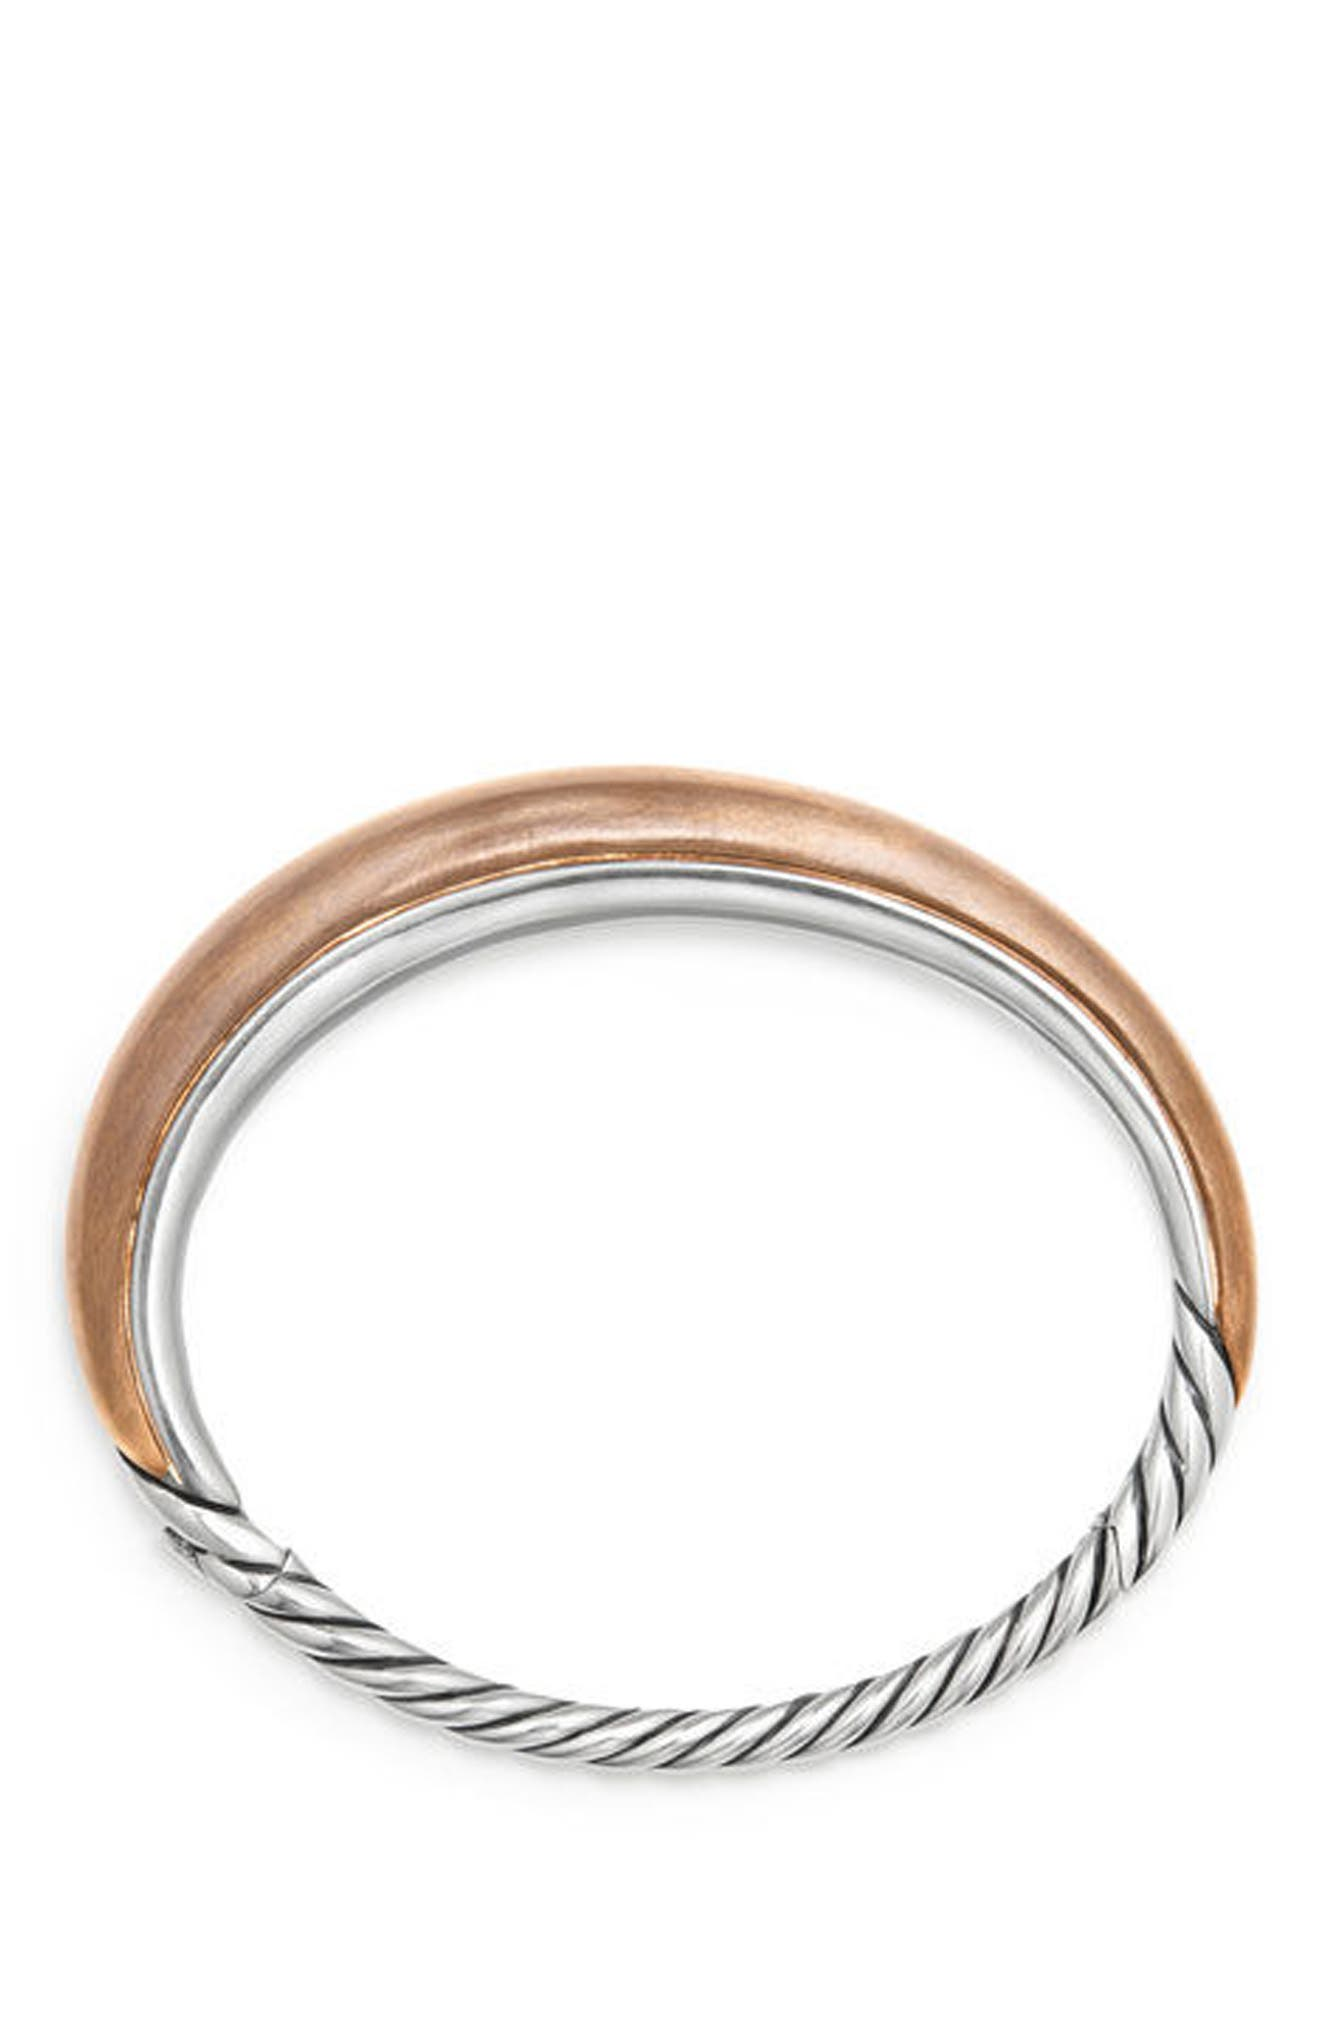 DAVID YURMAN, Pure Form Mixed Metal Smooth Bracelet with Diamonds, Bronze and Silver, 9.5mm, Alternate thumbnail 3, color, SILVER